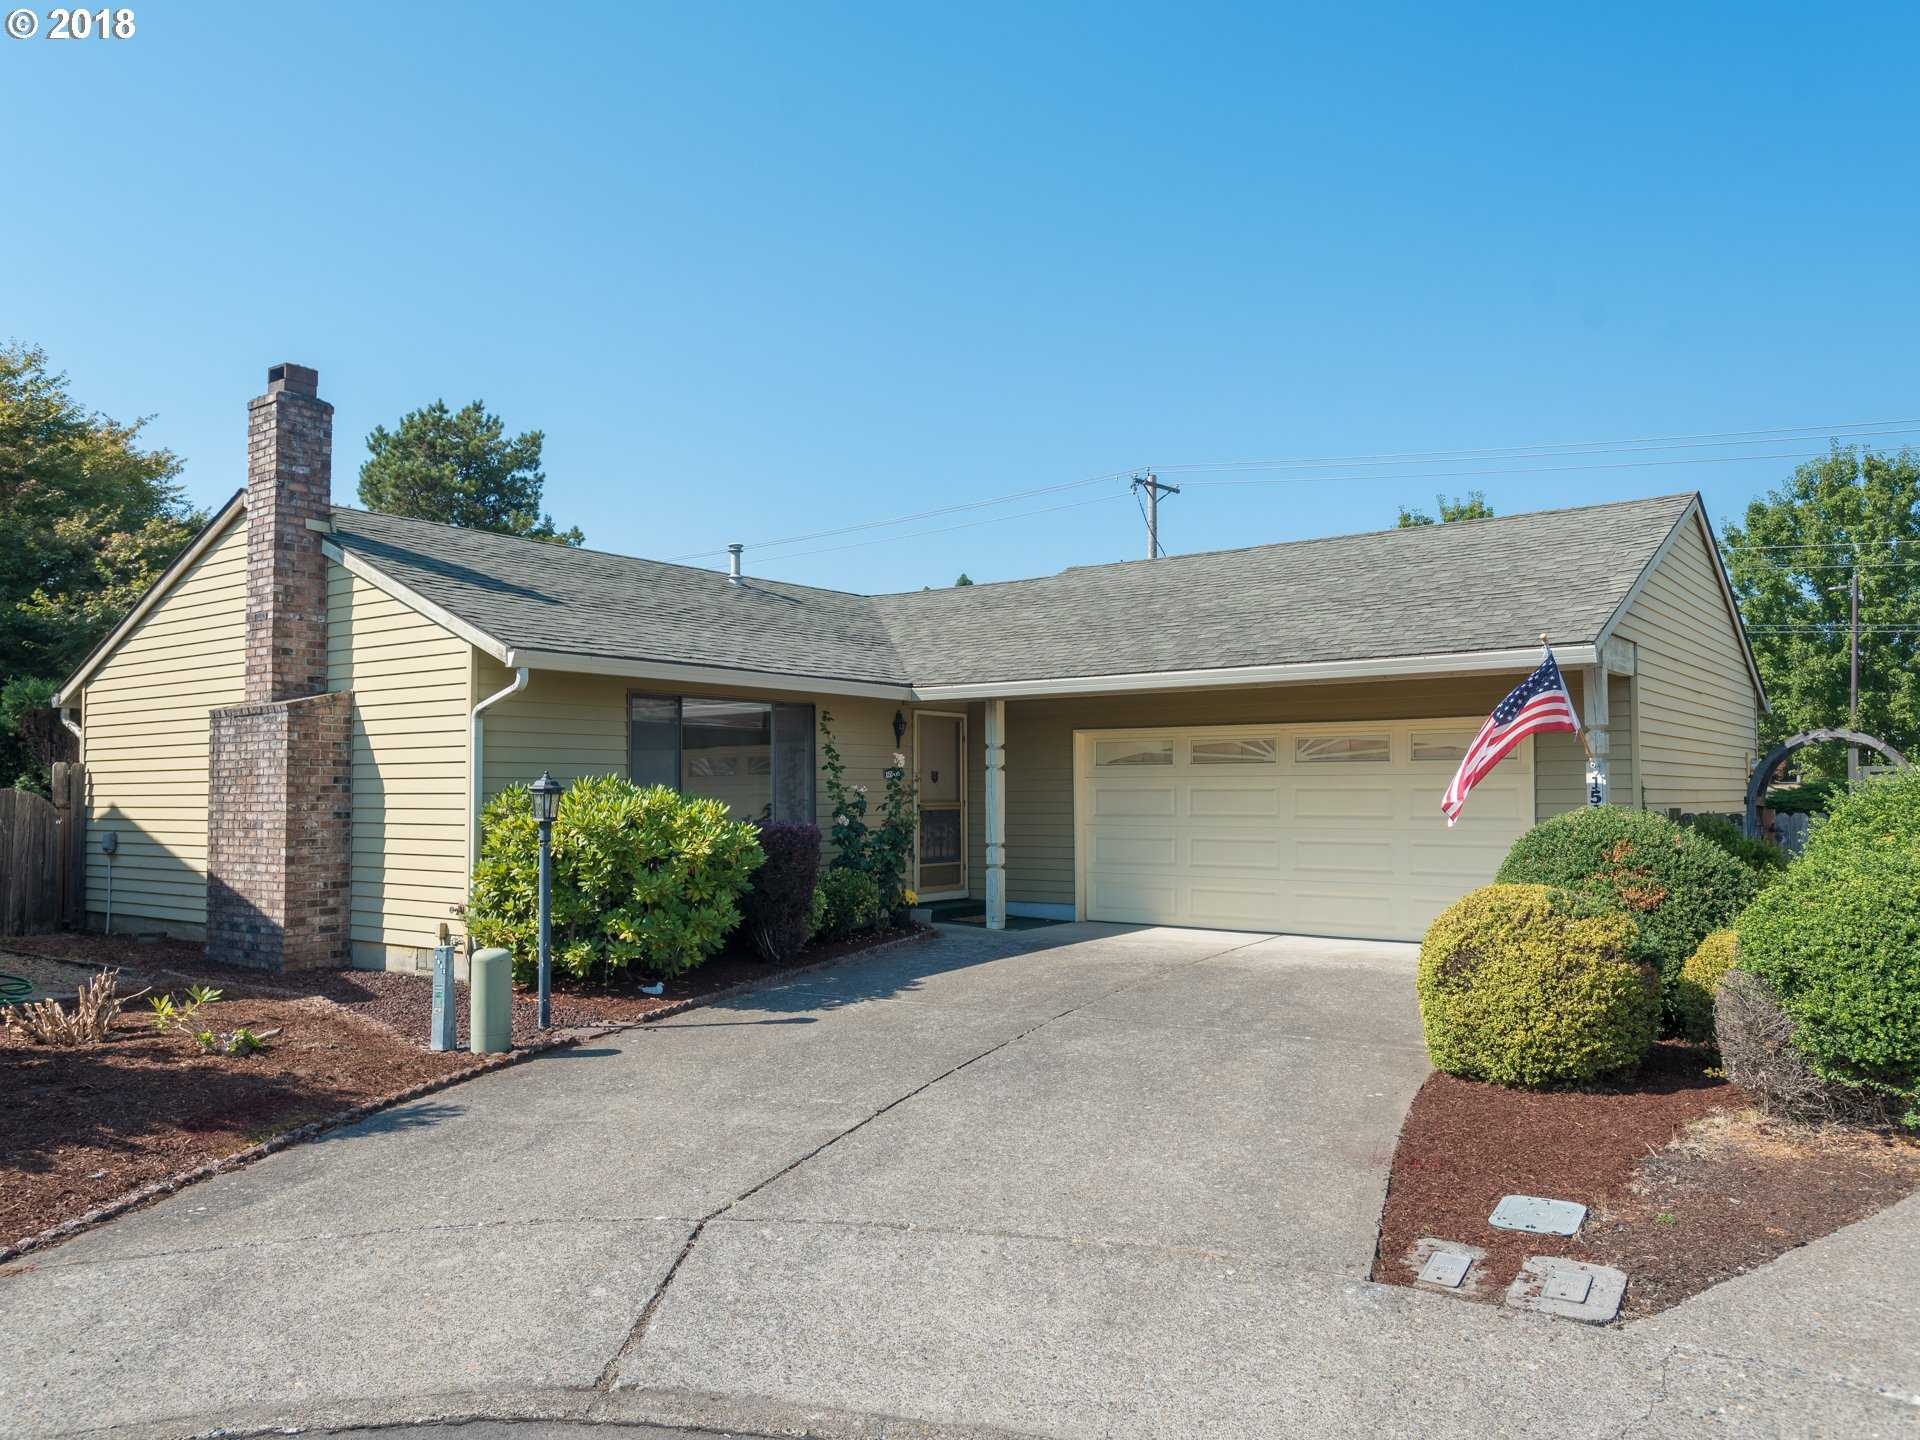 $325,000 - 2Br/2Ba -  for Sale in Summerfield, Tigard